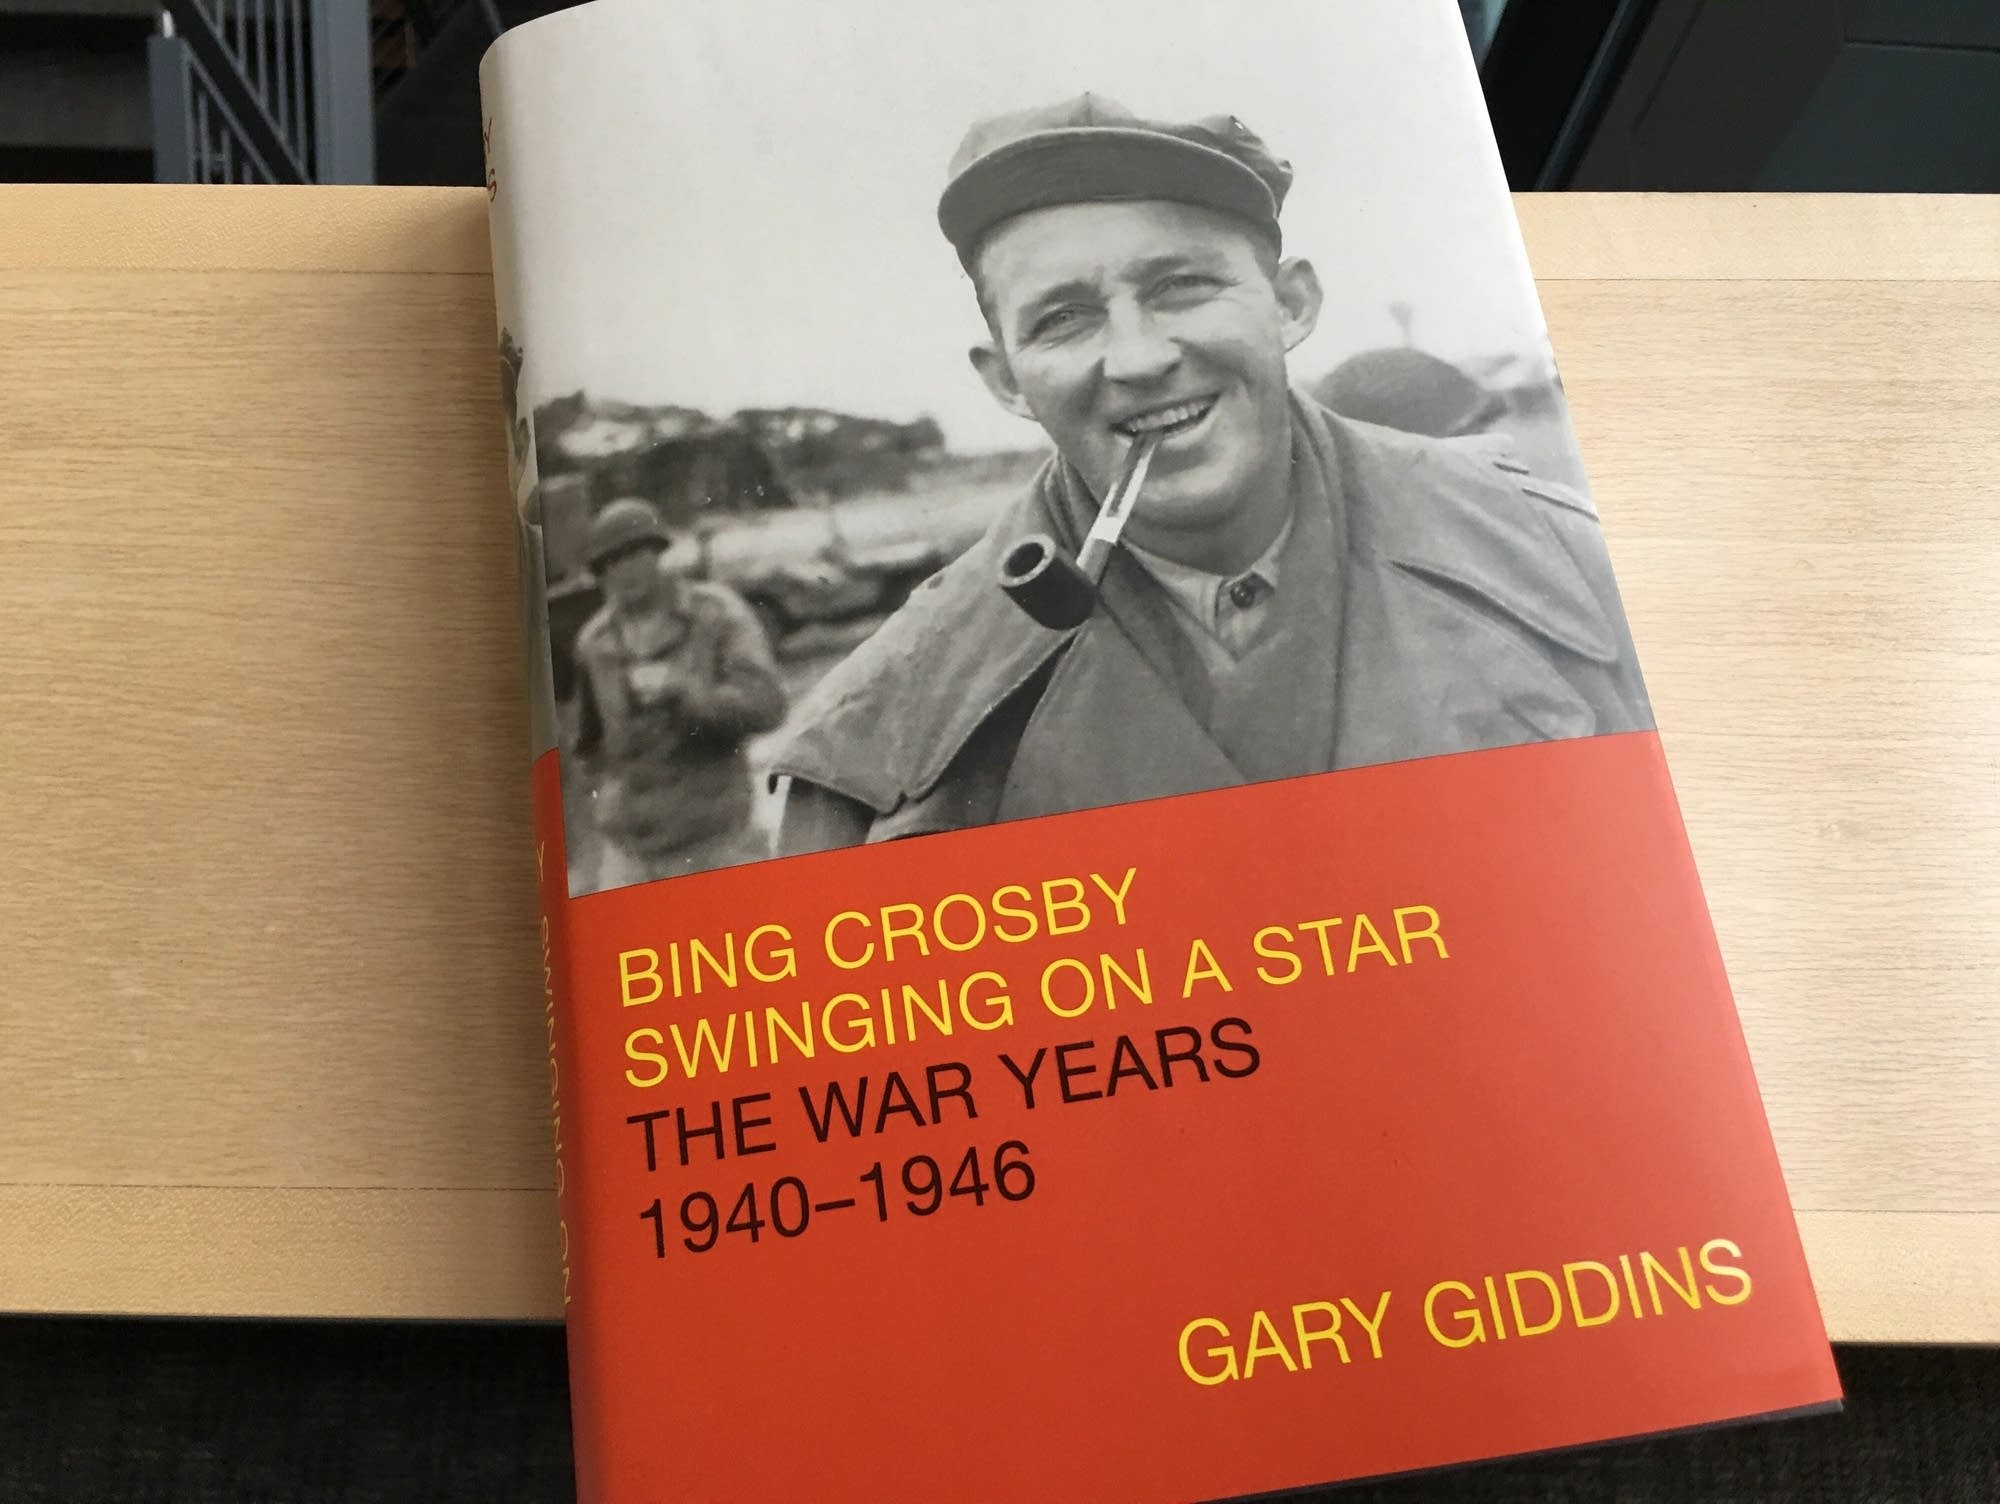 'Bing Crosby: Swinging on a Star - The War Years 1940-1946.'